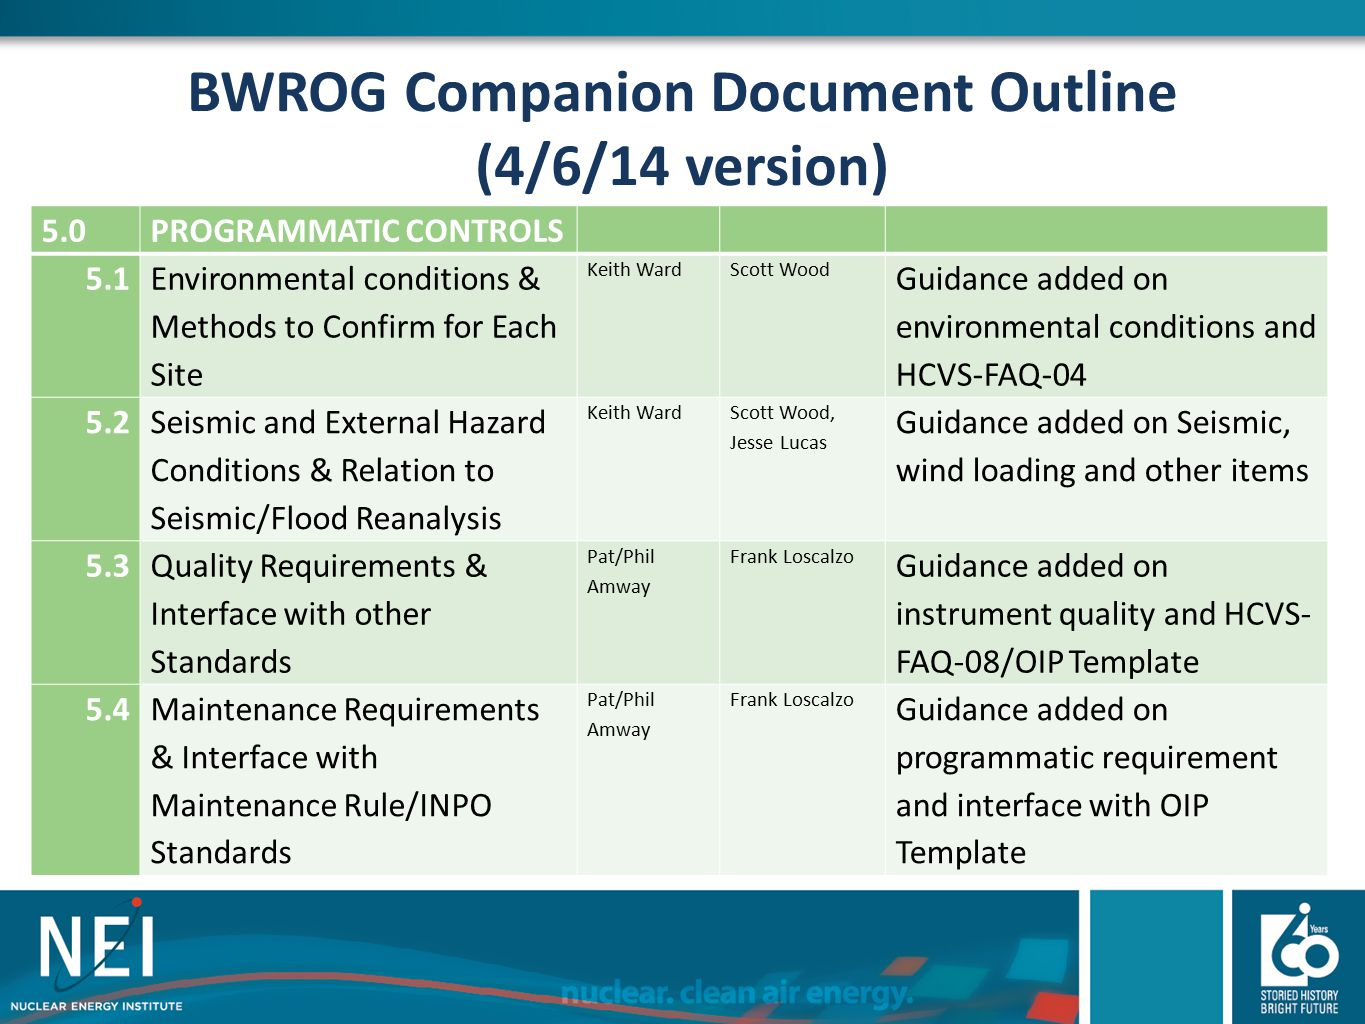 BWROG Companion Document Outline (4/6/14 version)